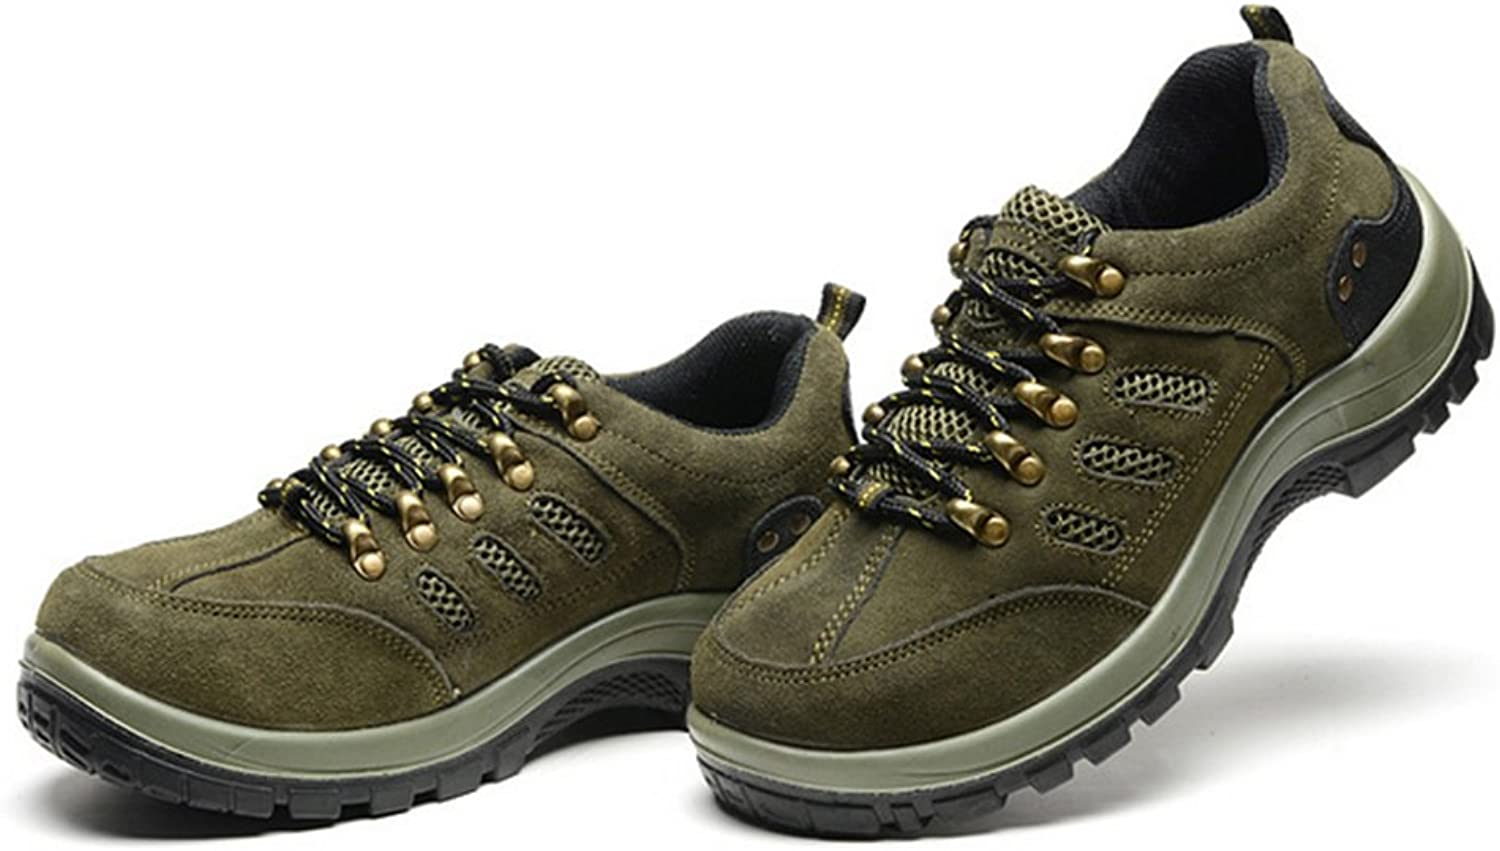 Rongzhan Climbing Safety shoes PU Green Smash-Proof Penetration-Resistant